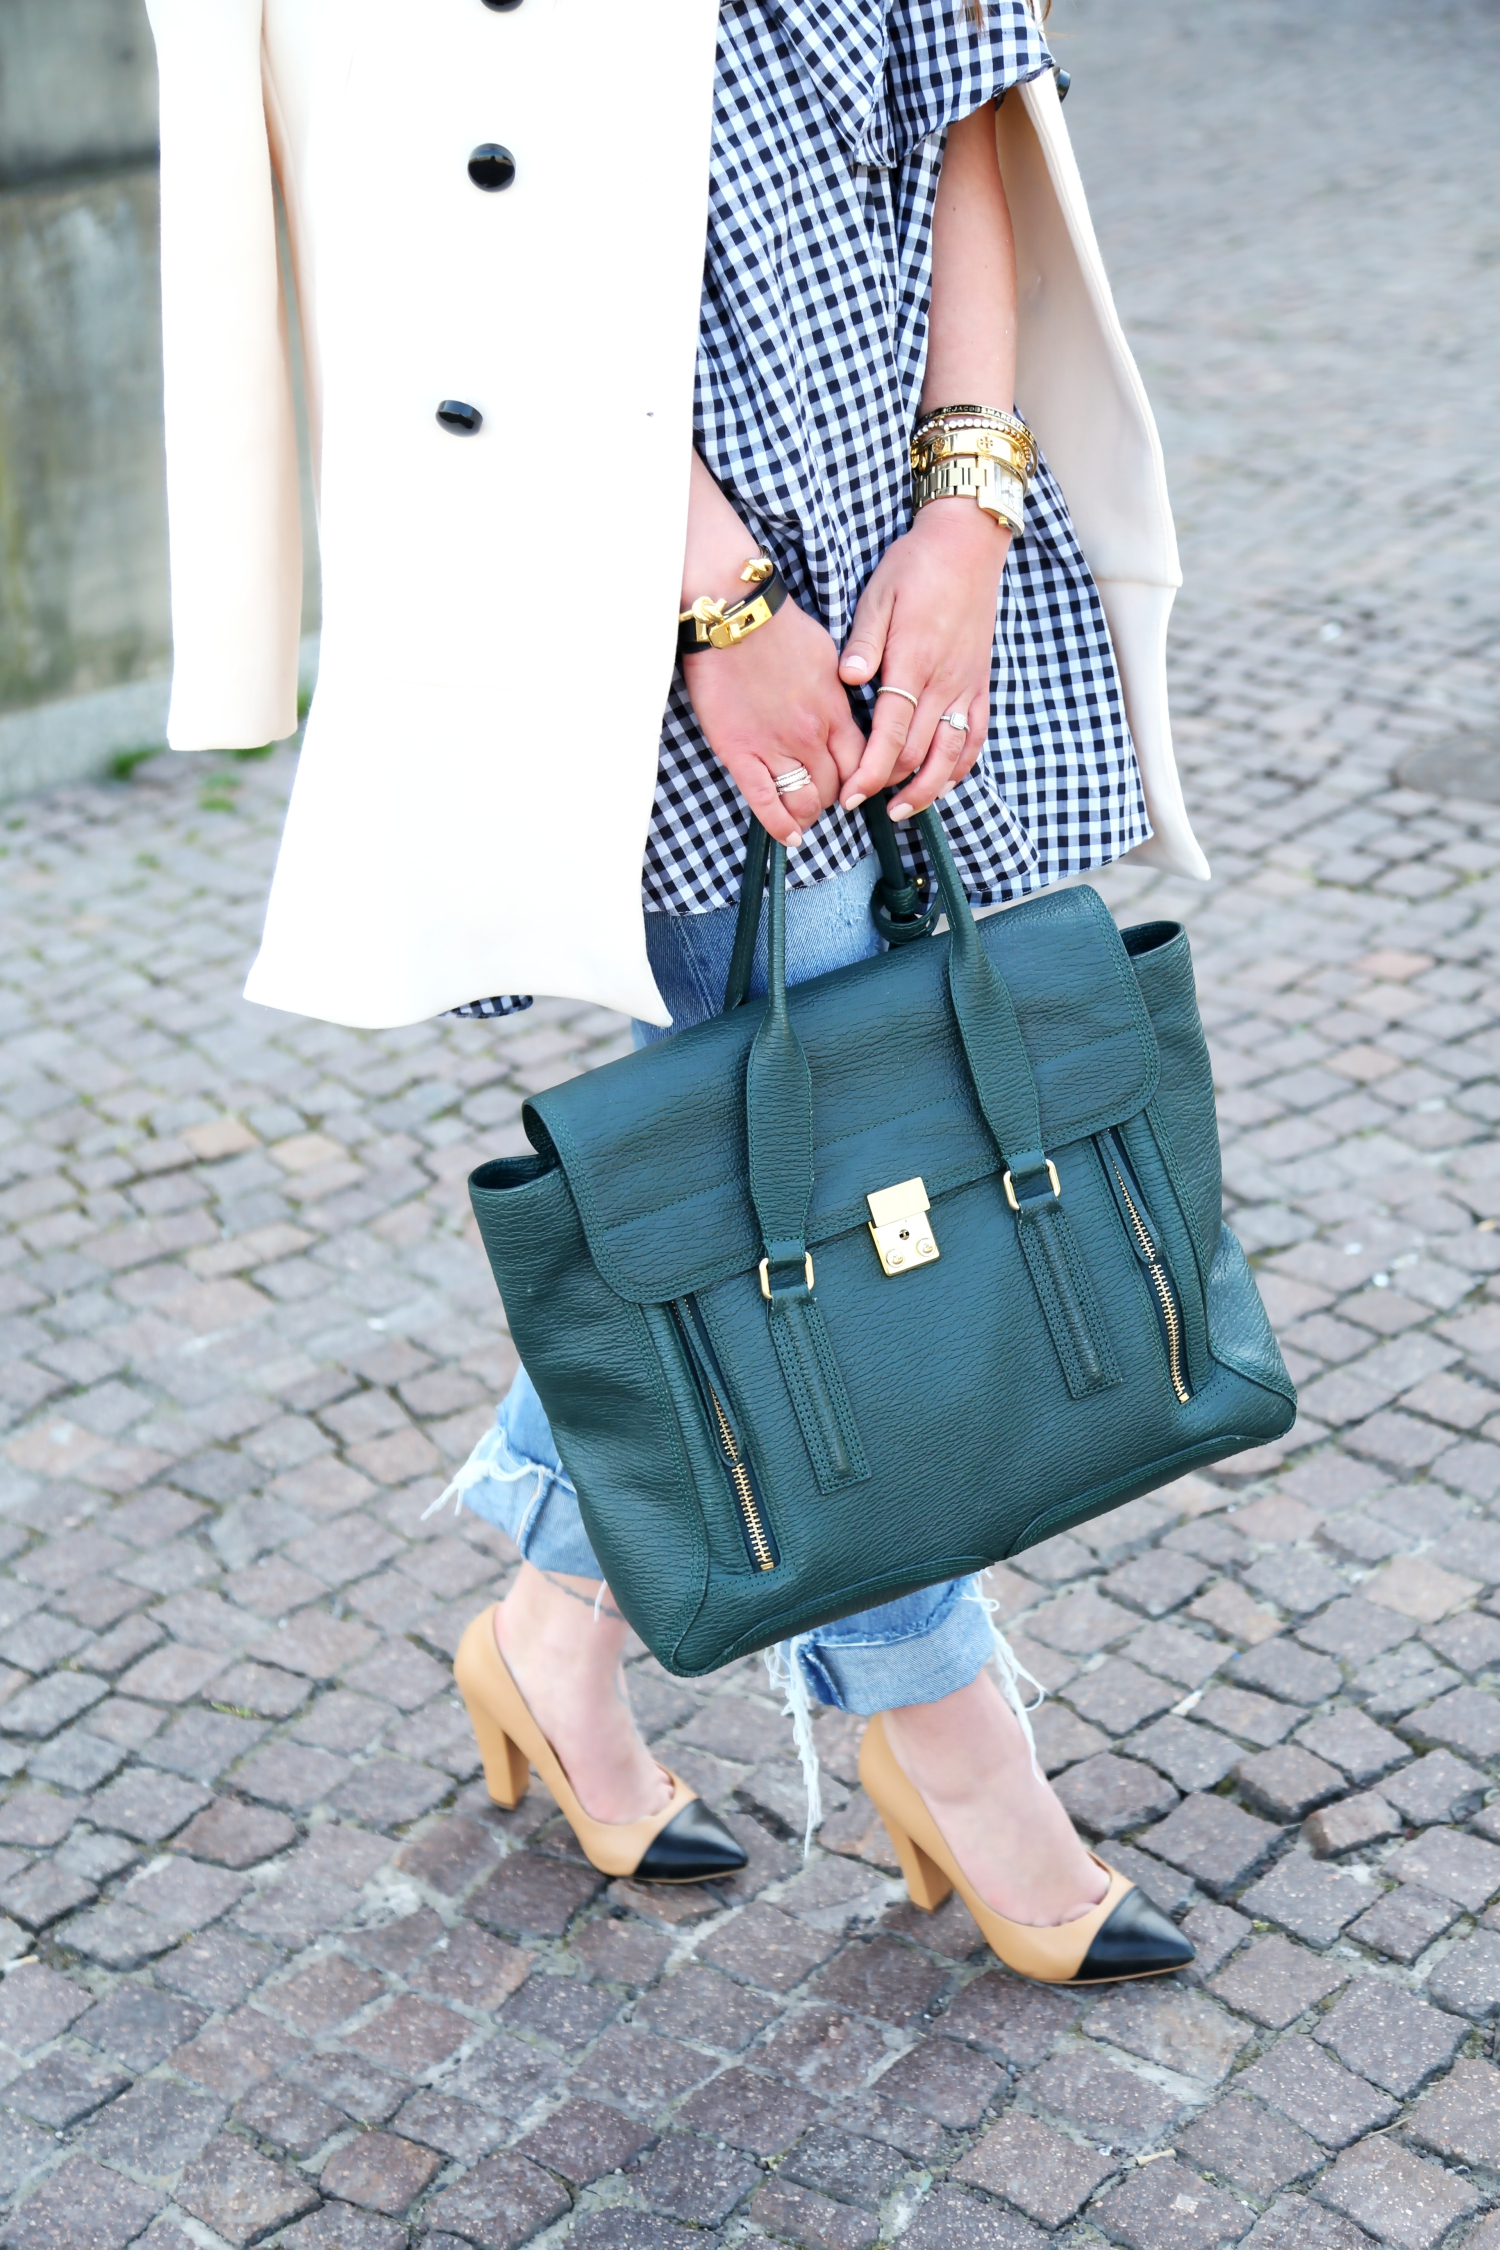 outfit-details-zara-pumps-chanel-look-mlm-label-pashli-bag